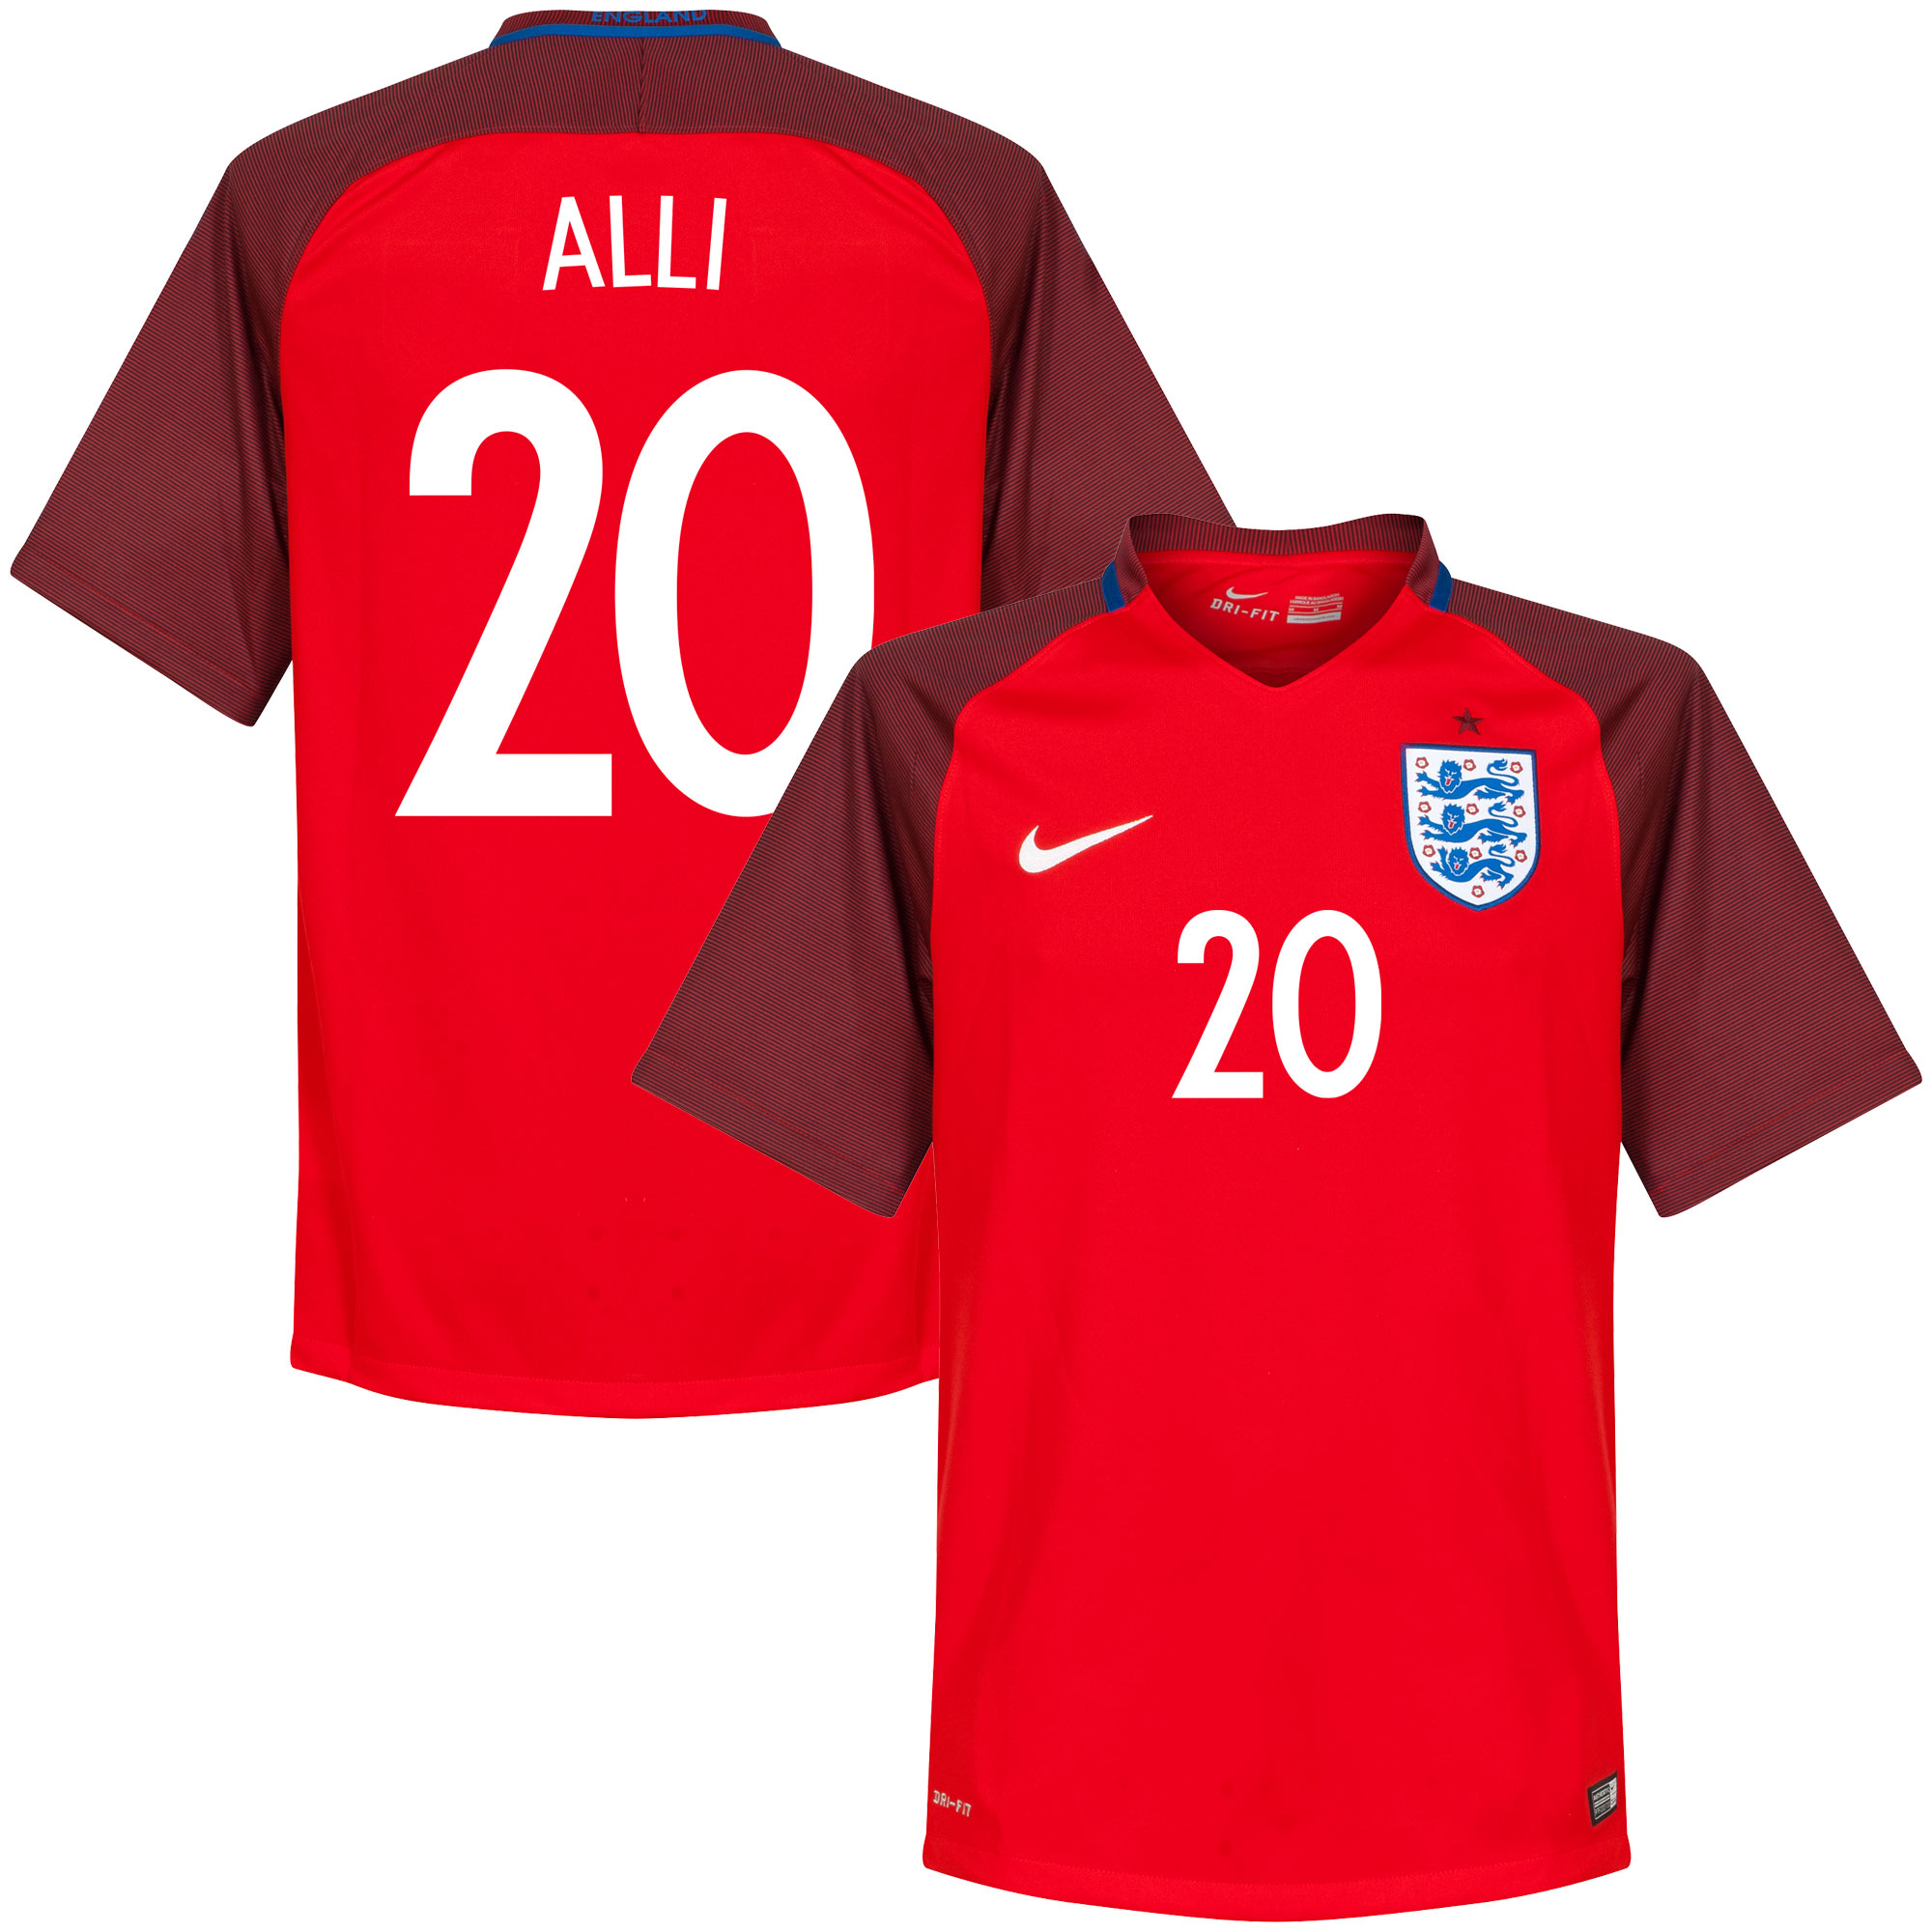 England Away Alli Jersey 2016 / 2017 (Fan Style Printing) - XL